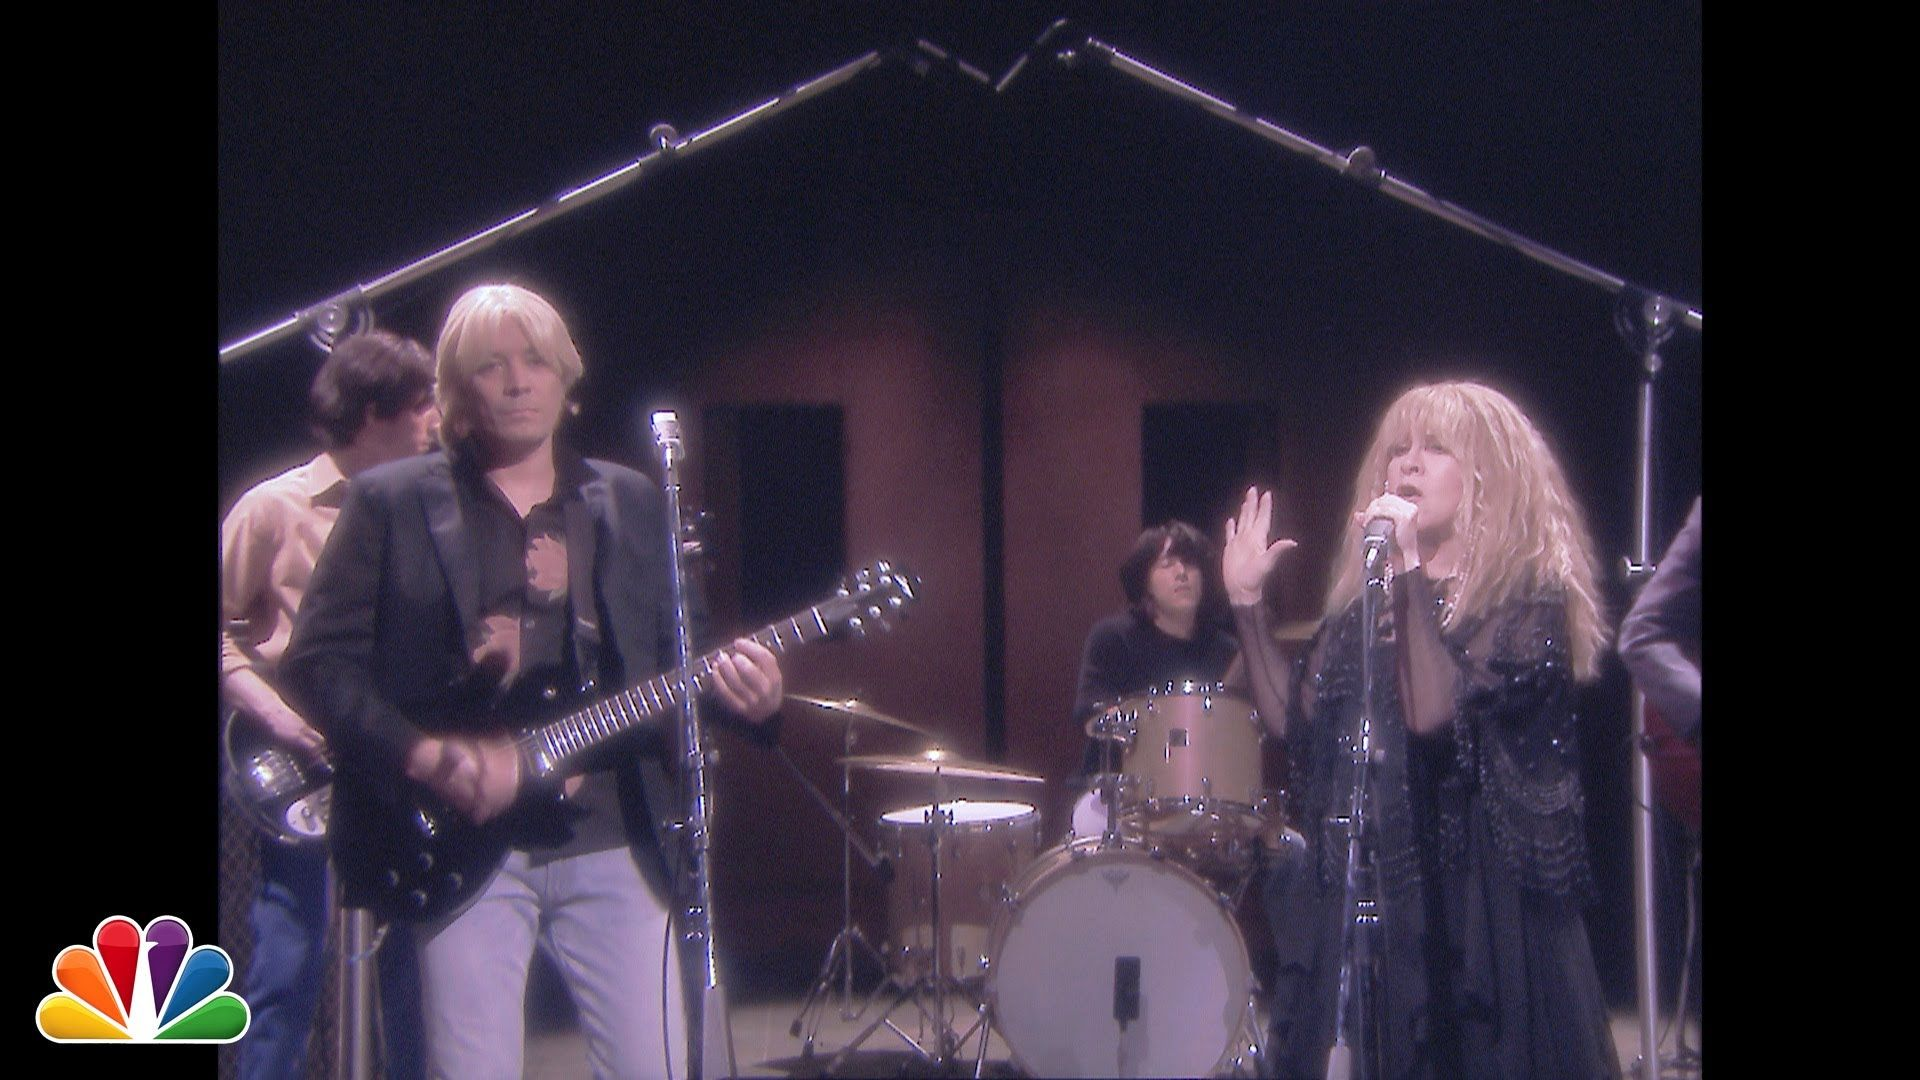 Jimmy Fallon as Tom Petty Re-Creates 'Stop Dragging My Heart Around' Duet With Stevie Nicks